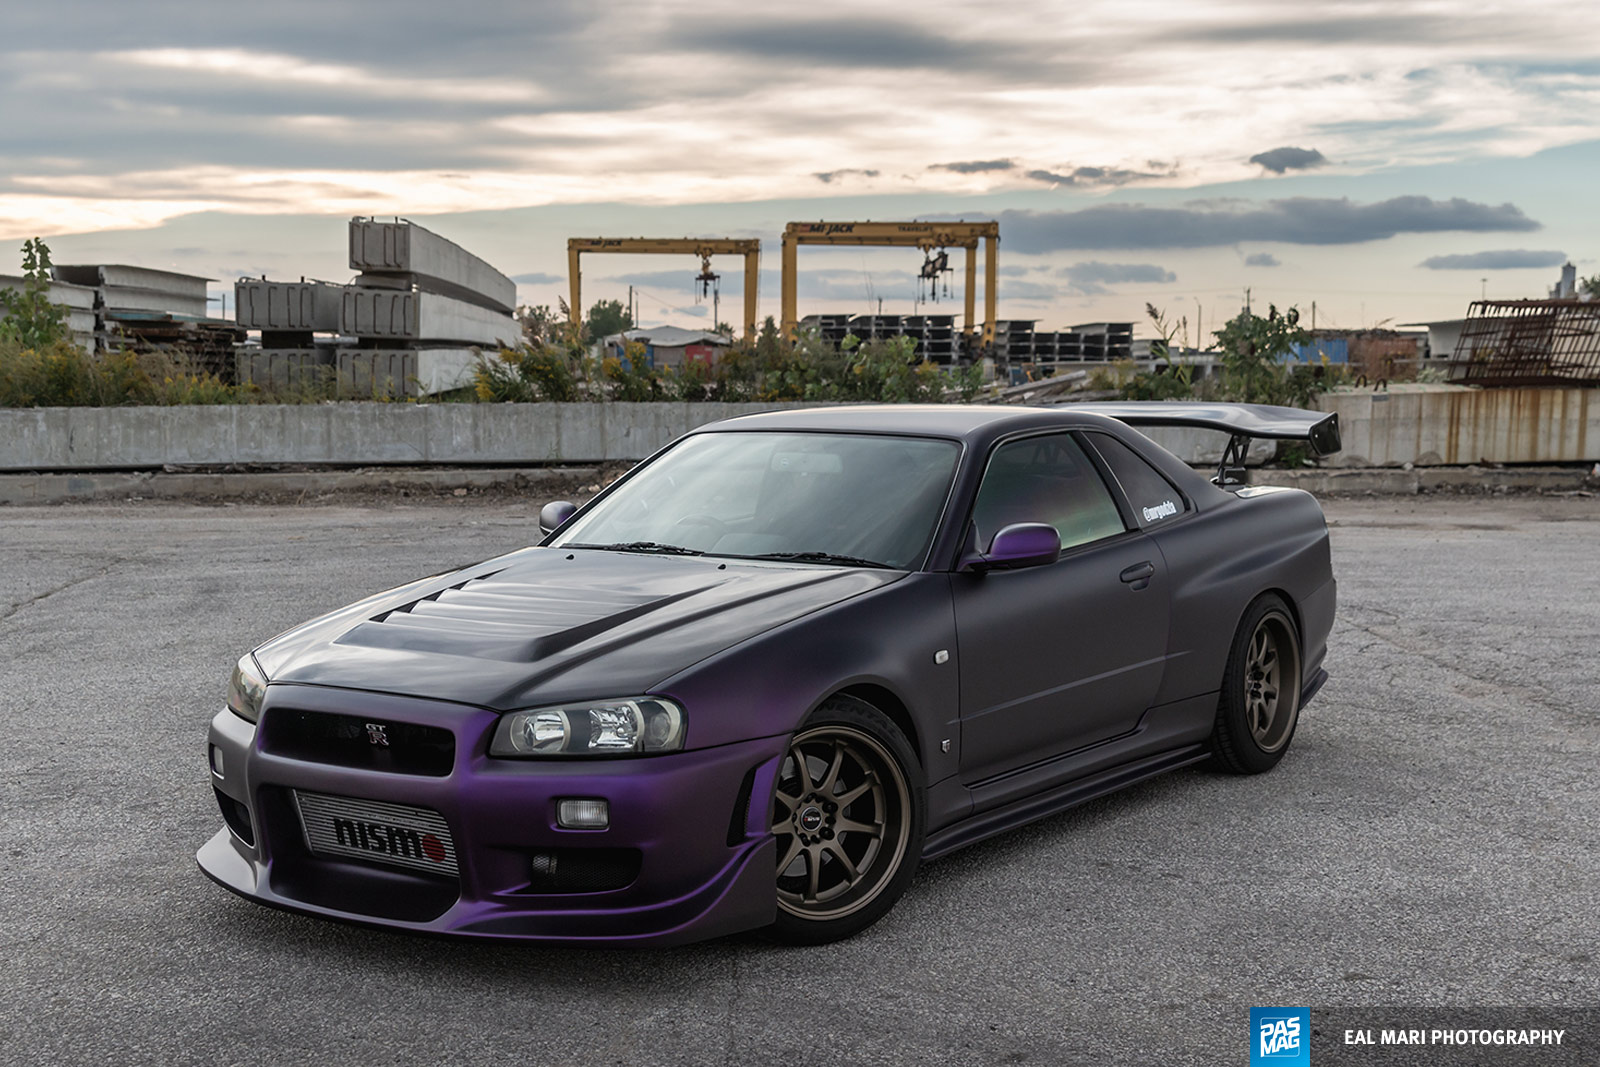 04 Mike Recine 1999 Nissan Skyline GTR pasmag Eal Mari Photography